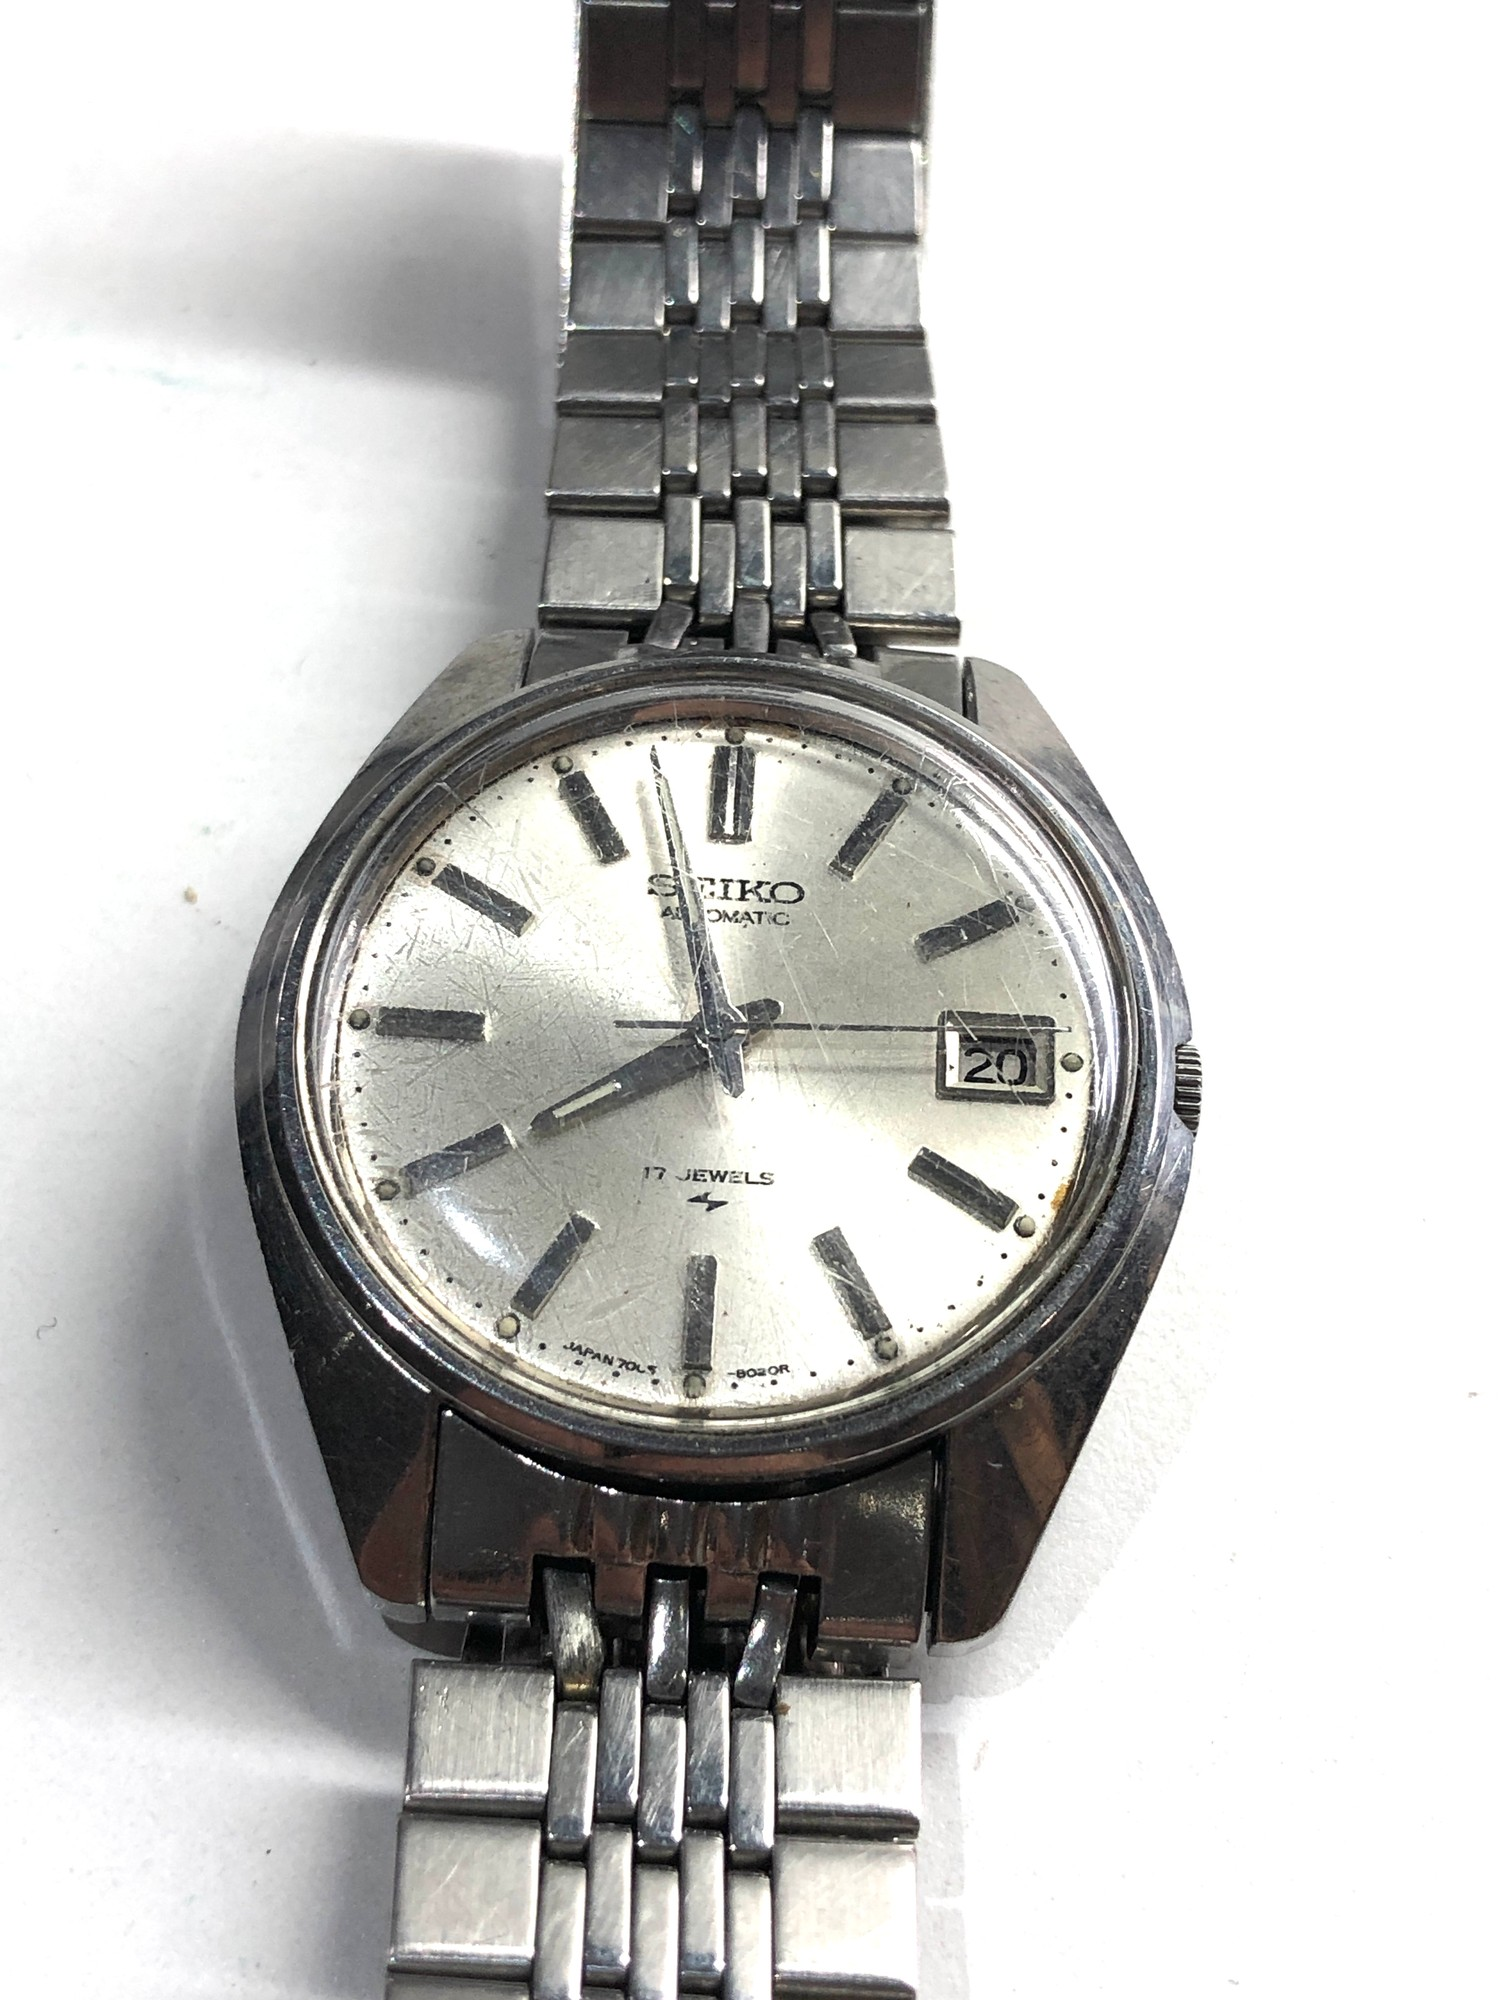 Vintage s-steel 1970's Seiko 7005-8022 classic 17 Jewel automatic Datejust watch working order no - Image 2 of 5